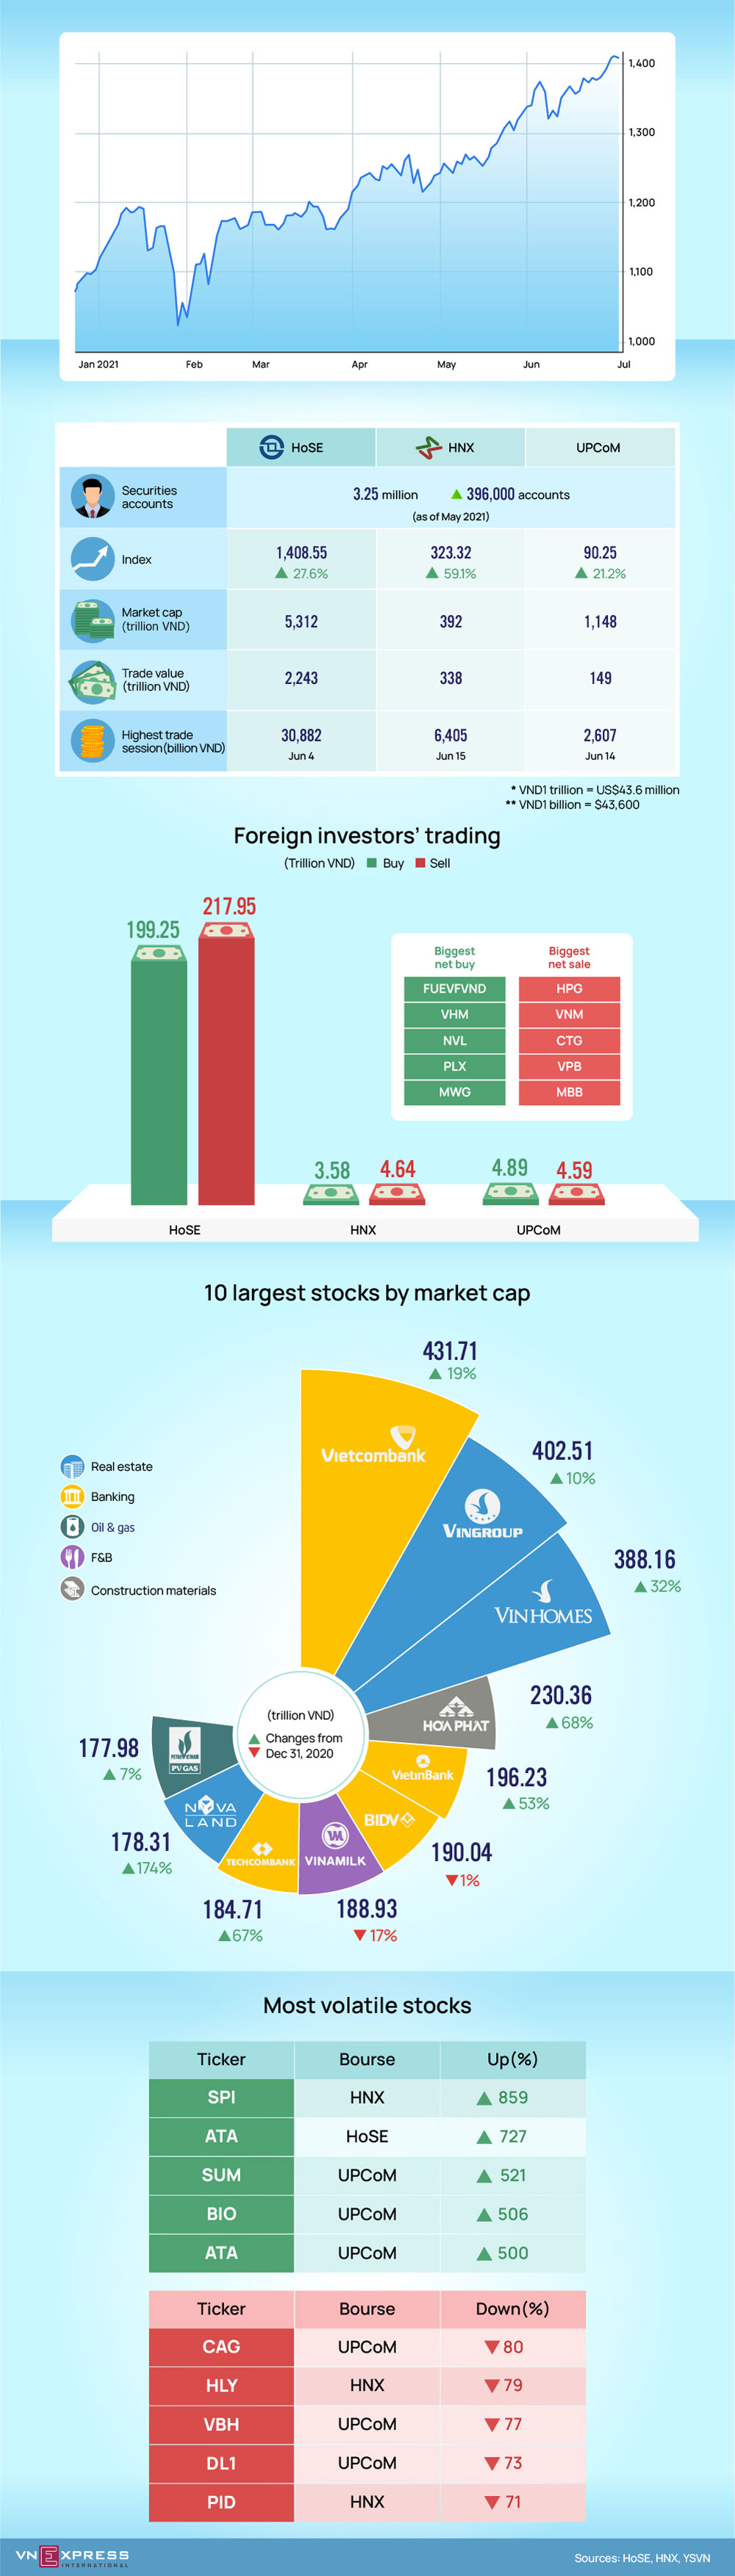 Vietnam stock market, three main indices, double-digit gains, first half,  economic recovery, Covid-19 impact